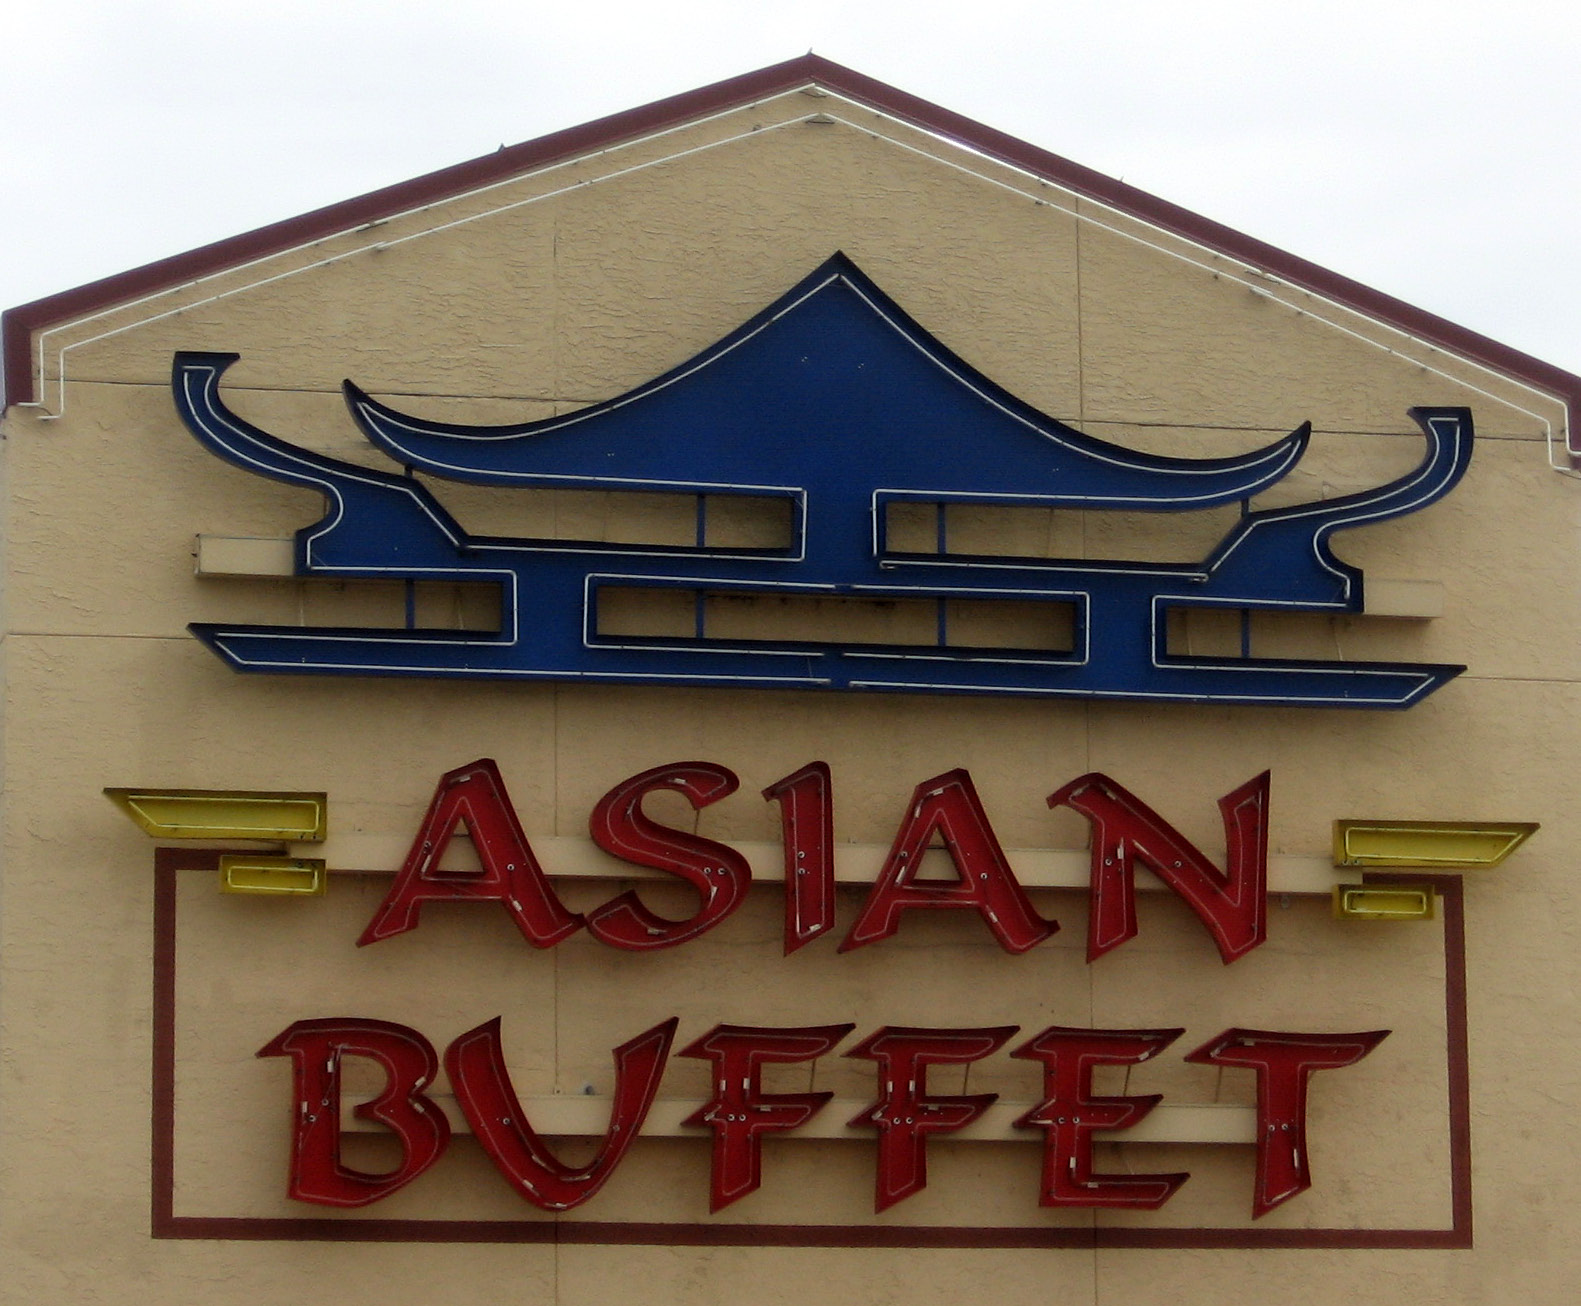 Chinese Food In Cape Girardeau